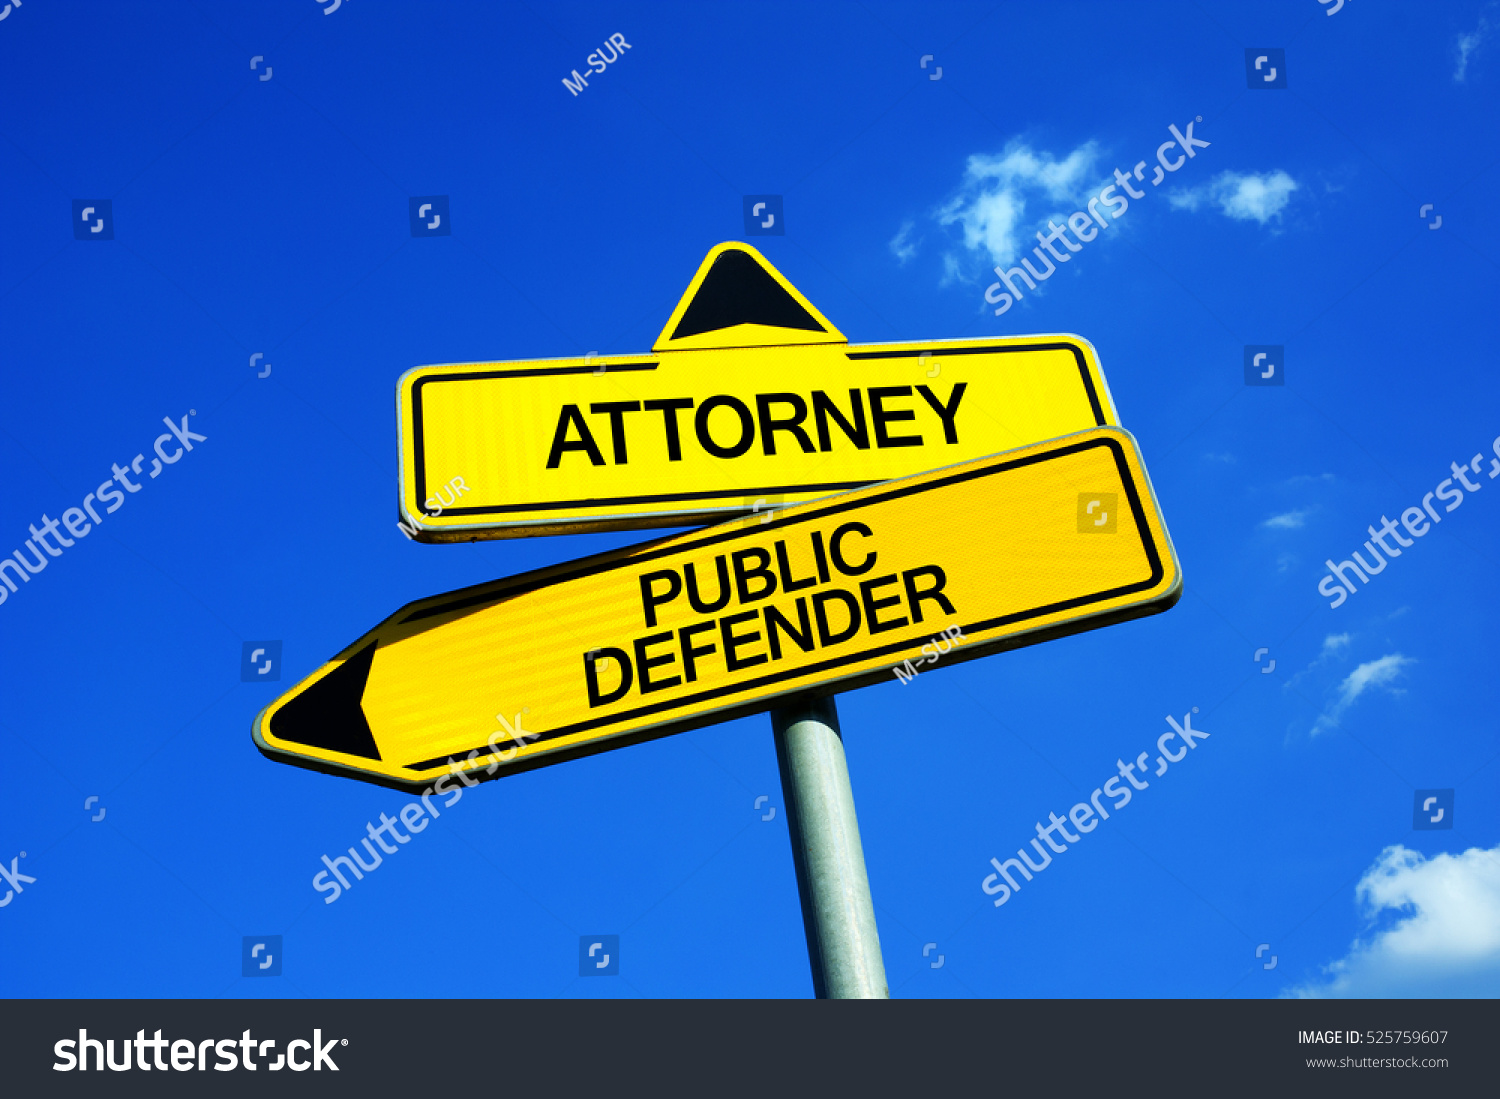 Stock options attorney